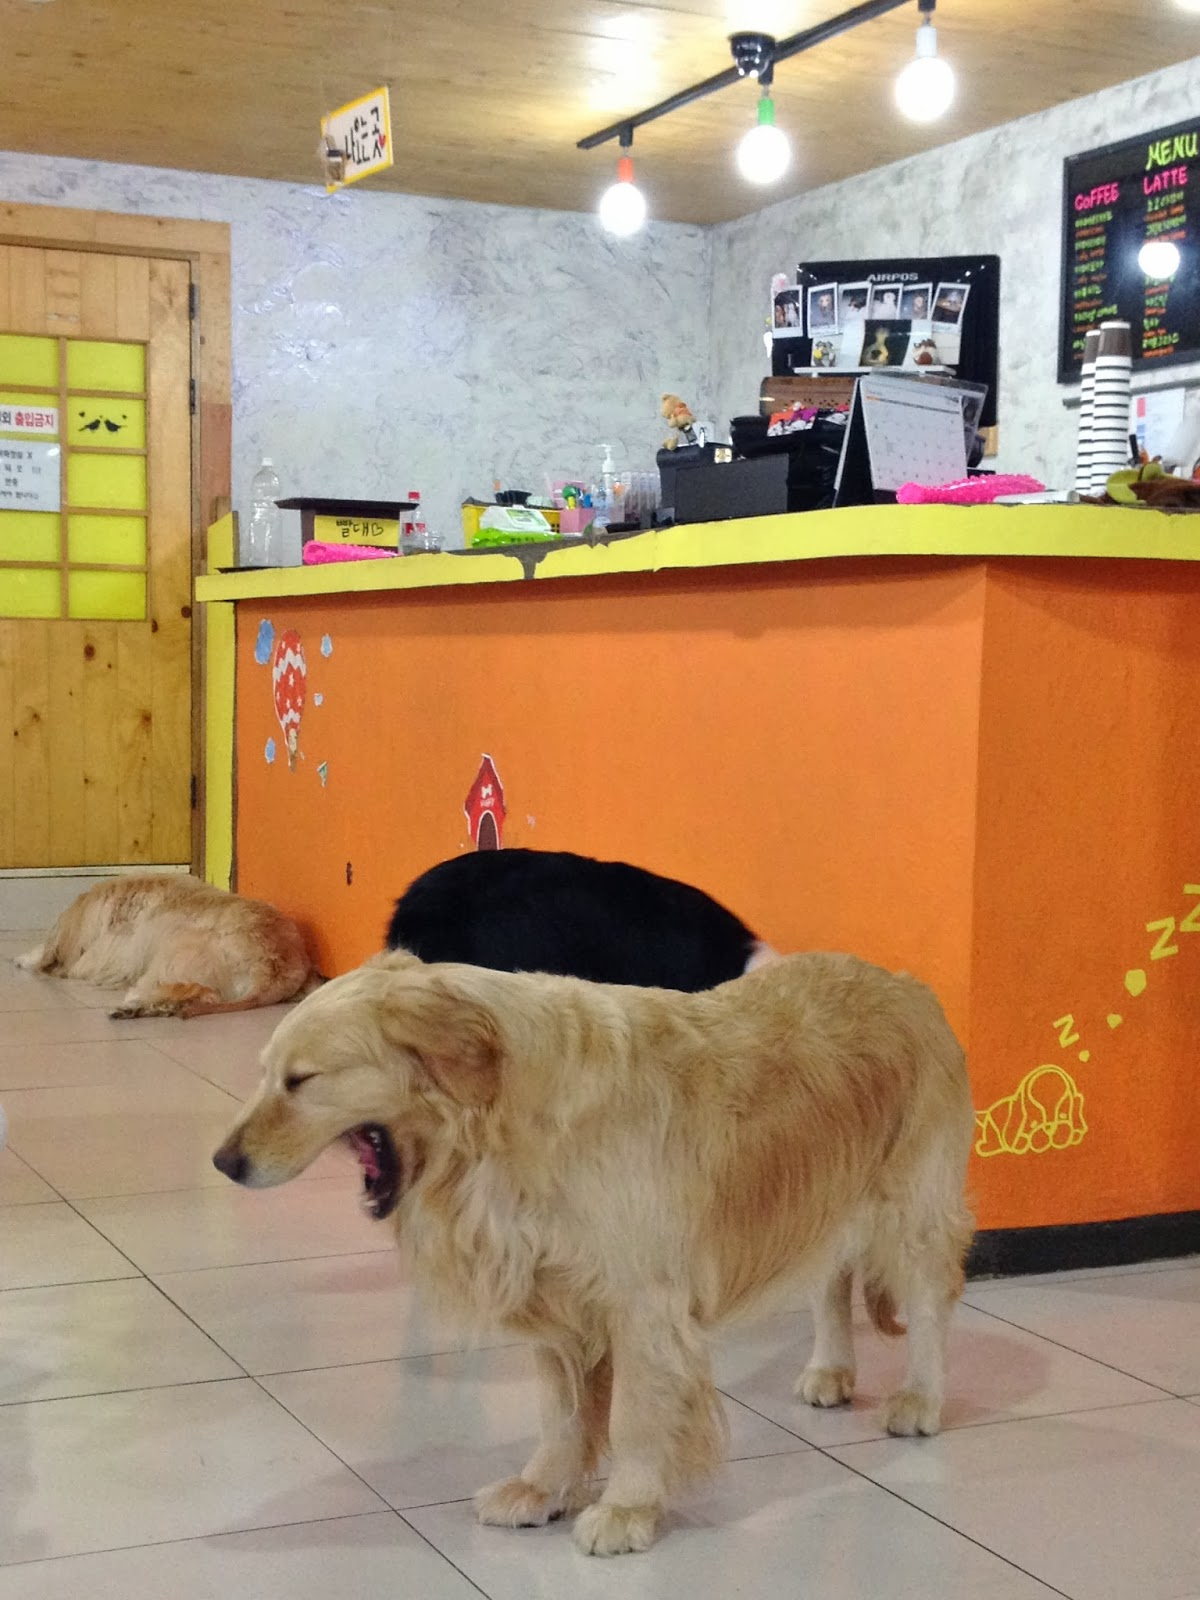 Dog Cafe in Seoul